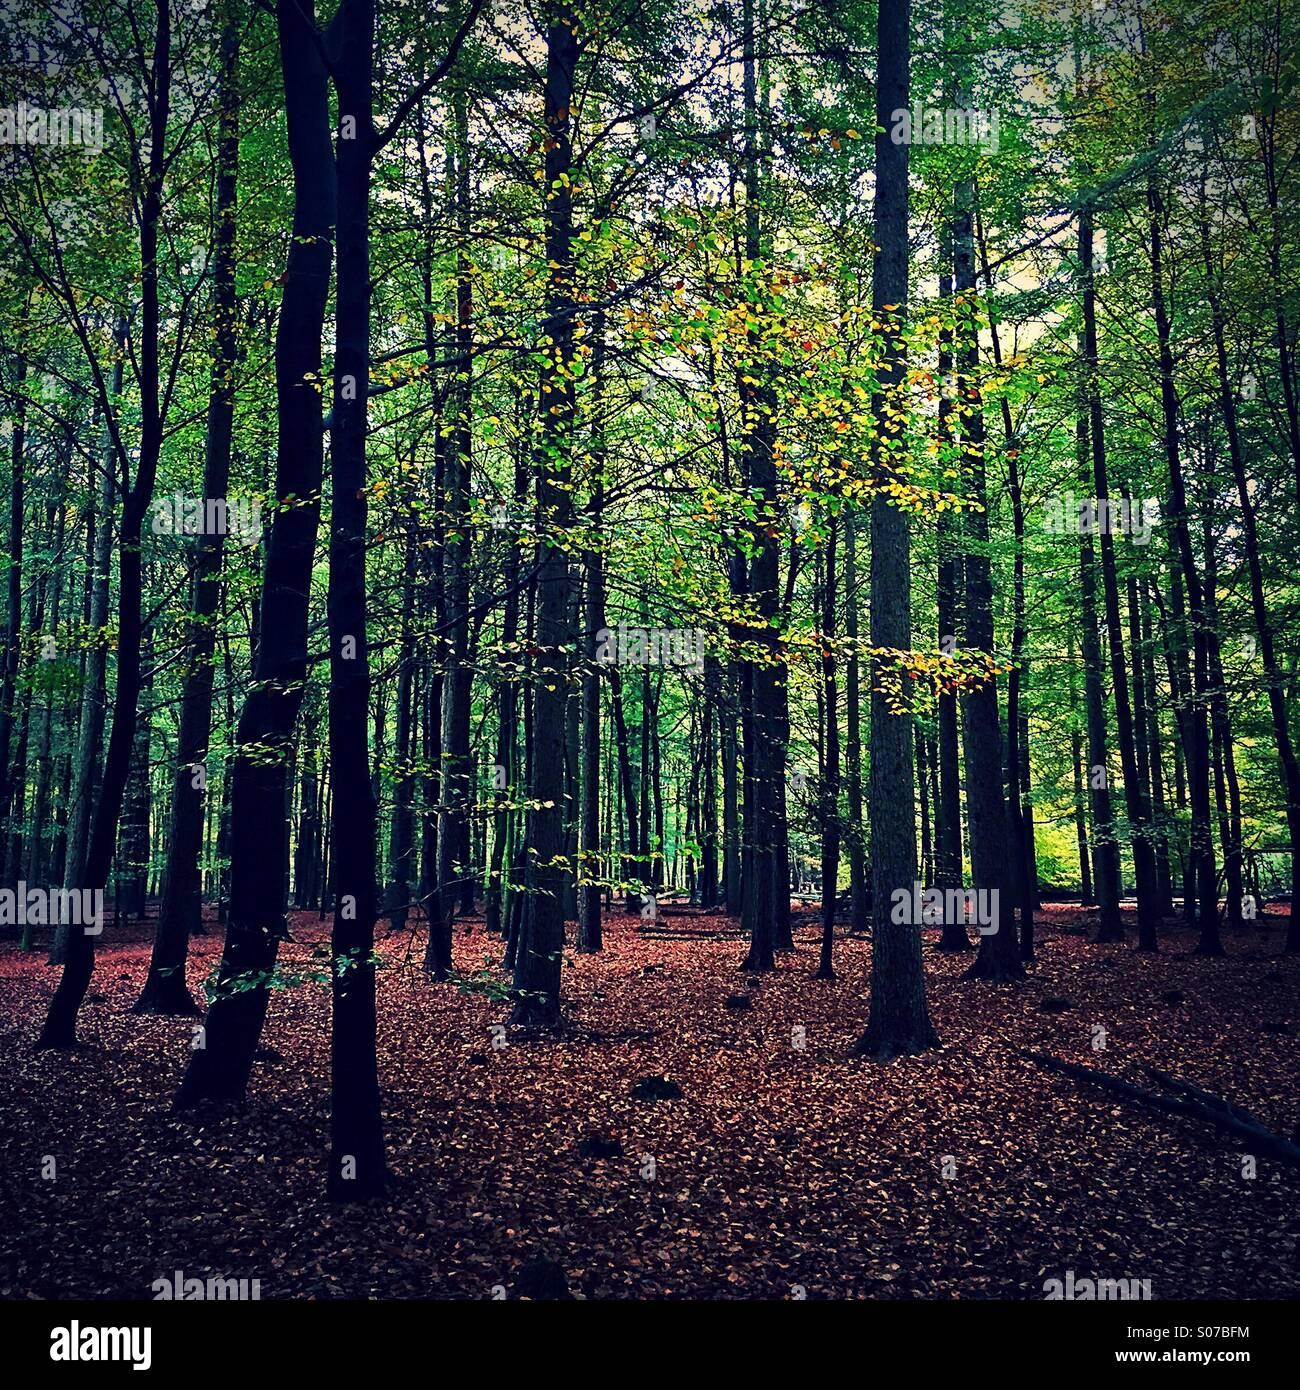 The woods - Stock Image